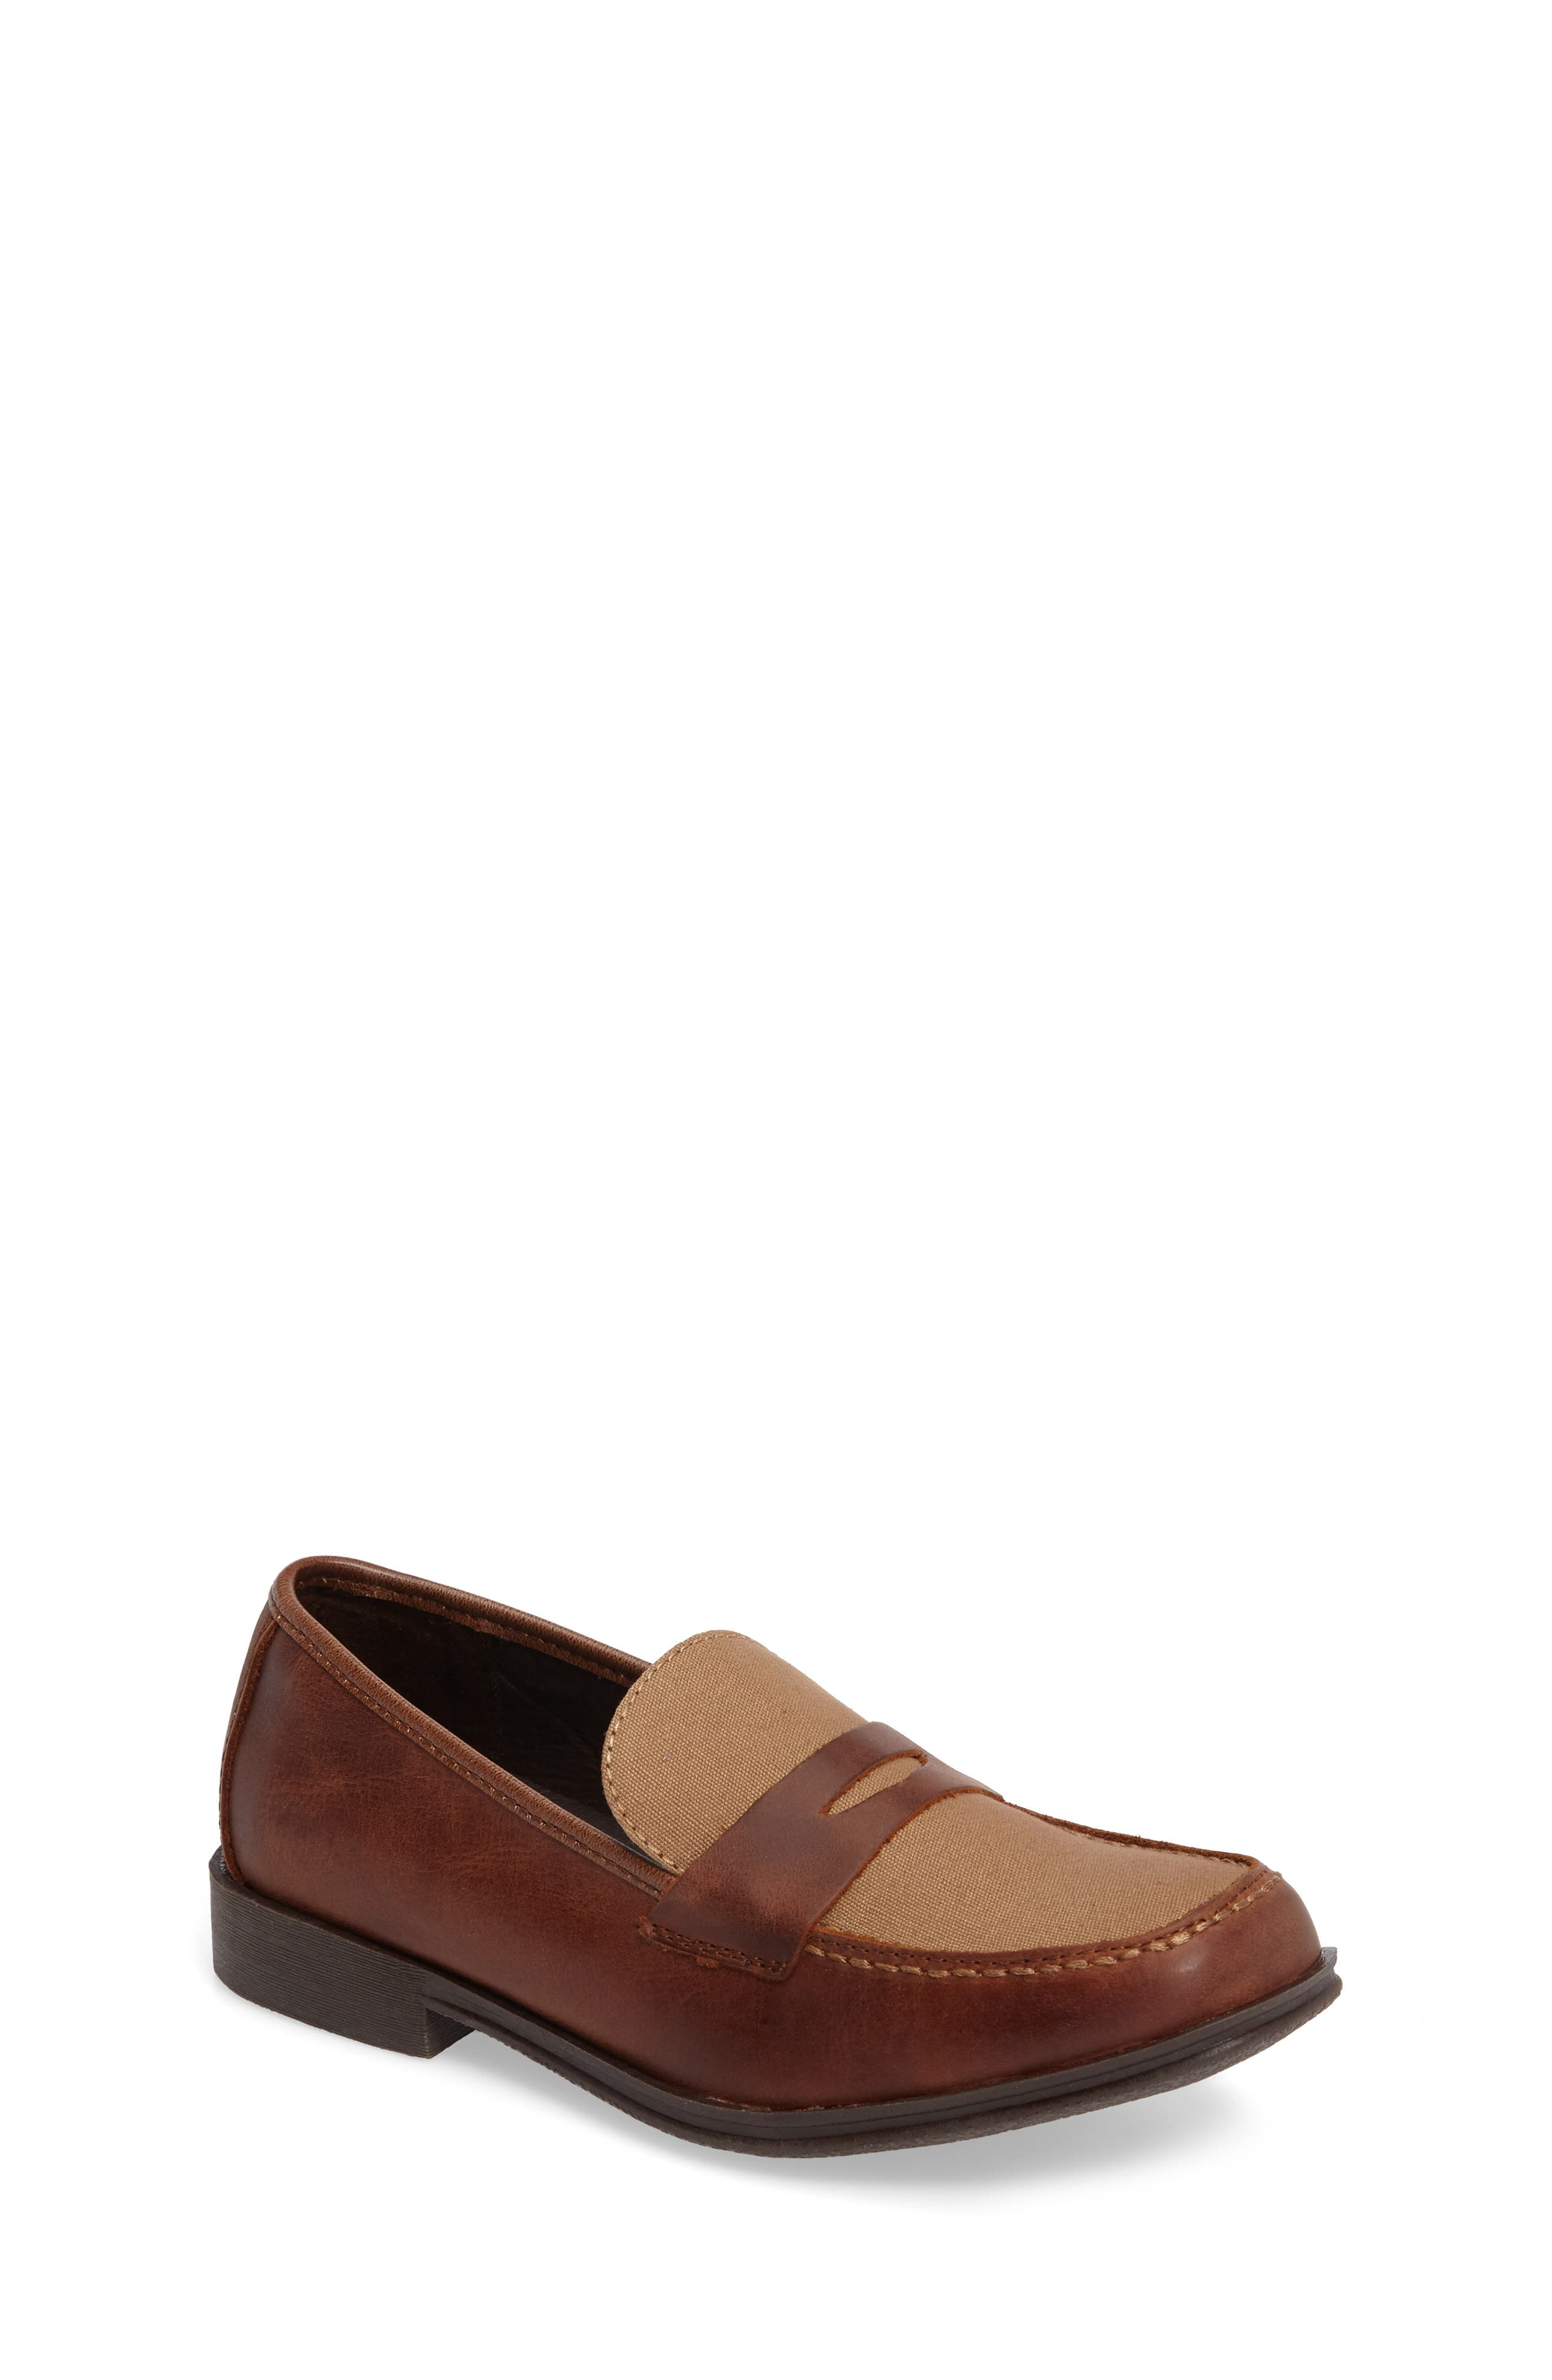 Club Loft Loafer,                         Main,                         color, 200